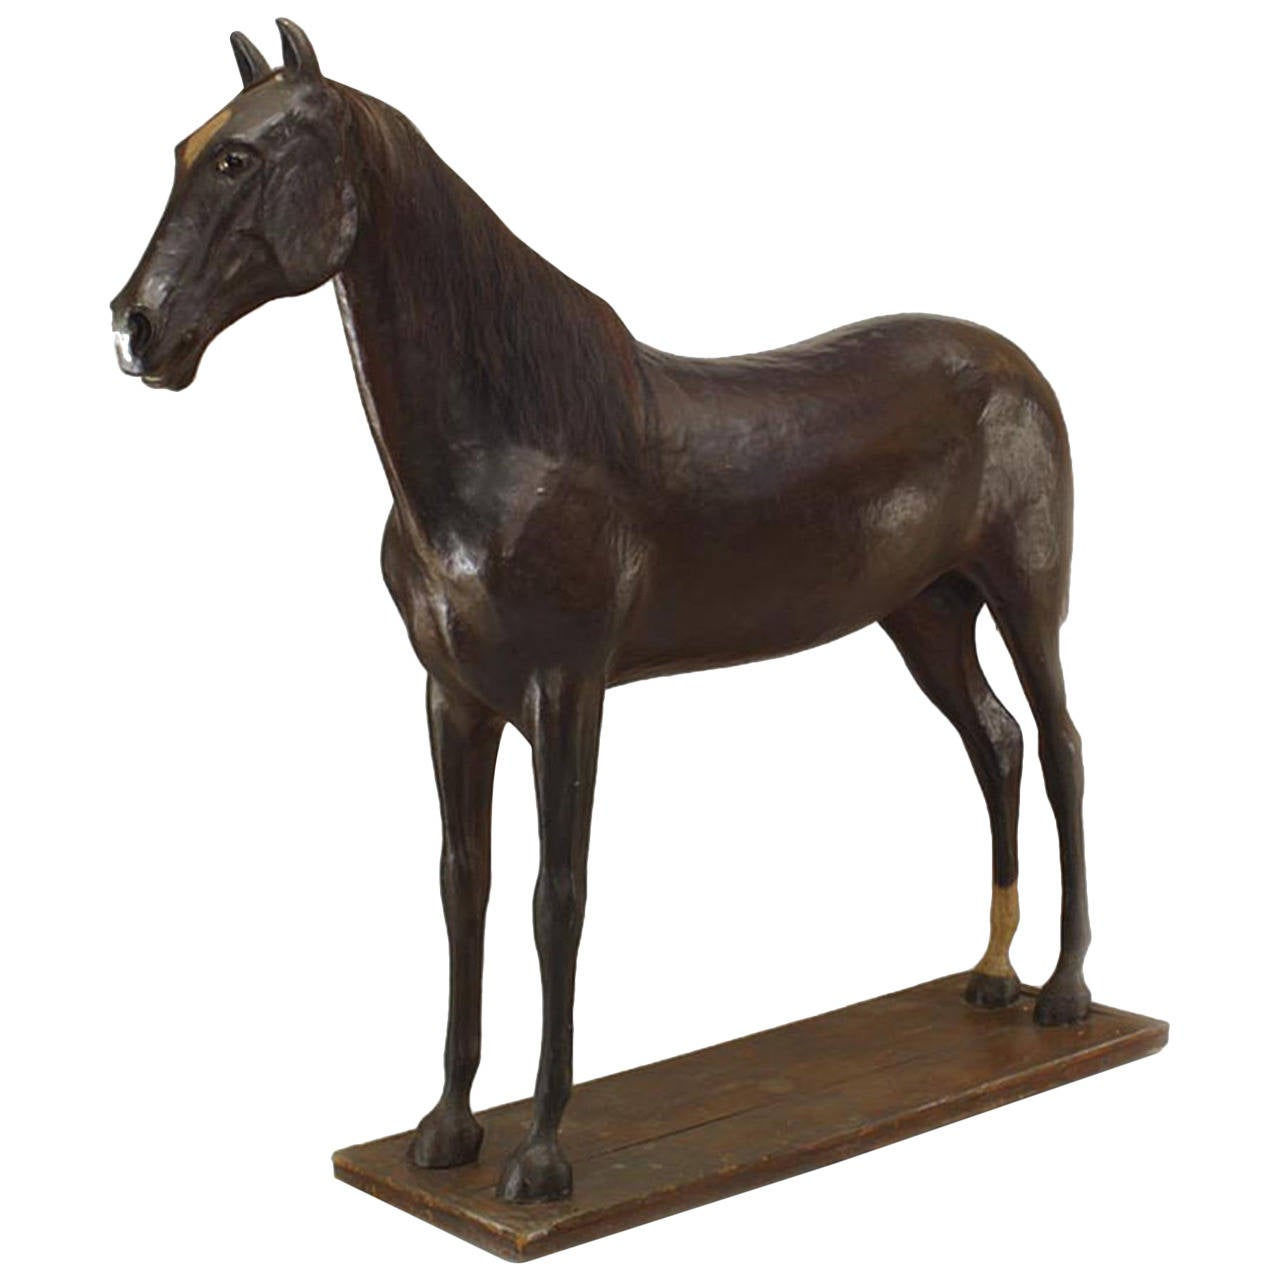 Life-Size Turn-of-the-Century English Country Style Papier Mâché Horse